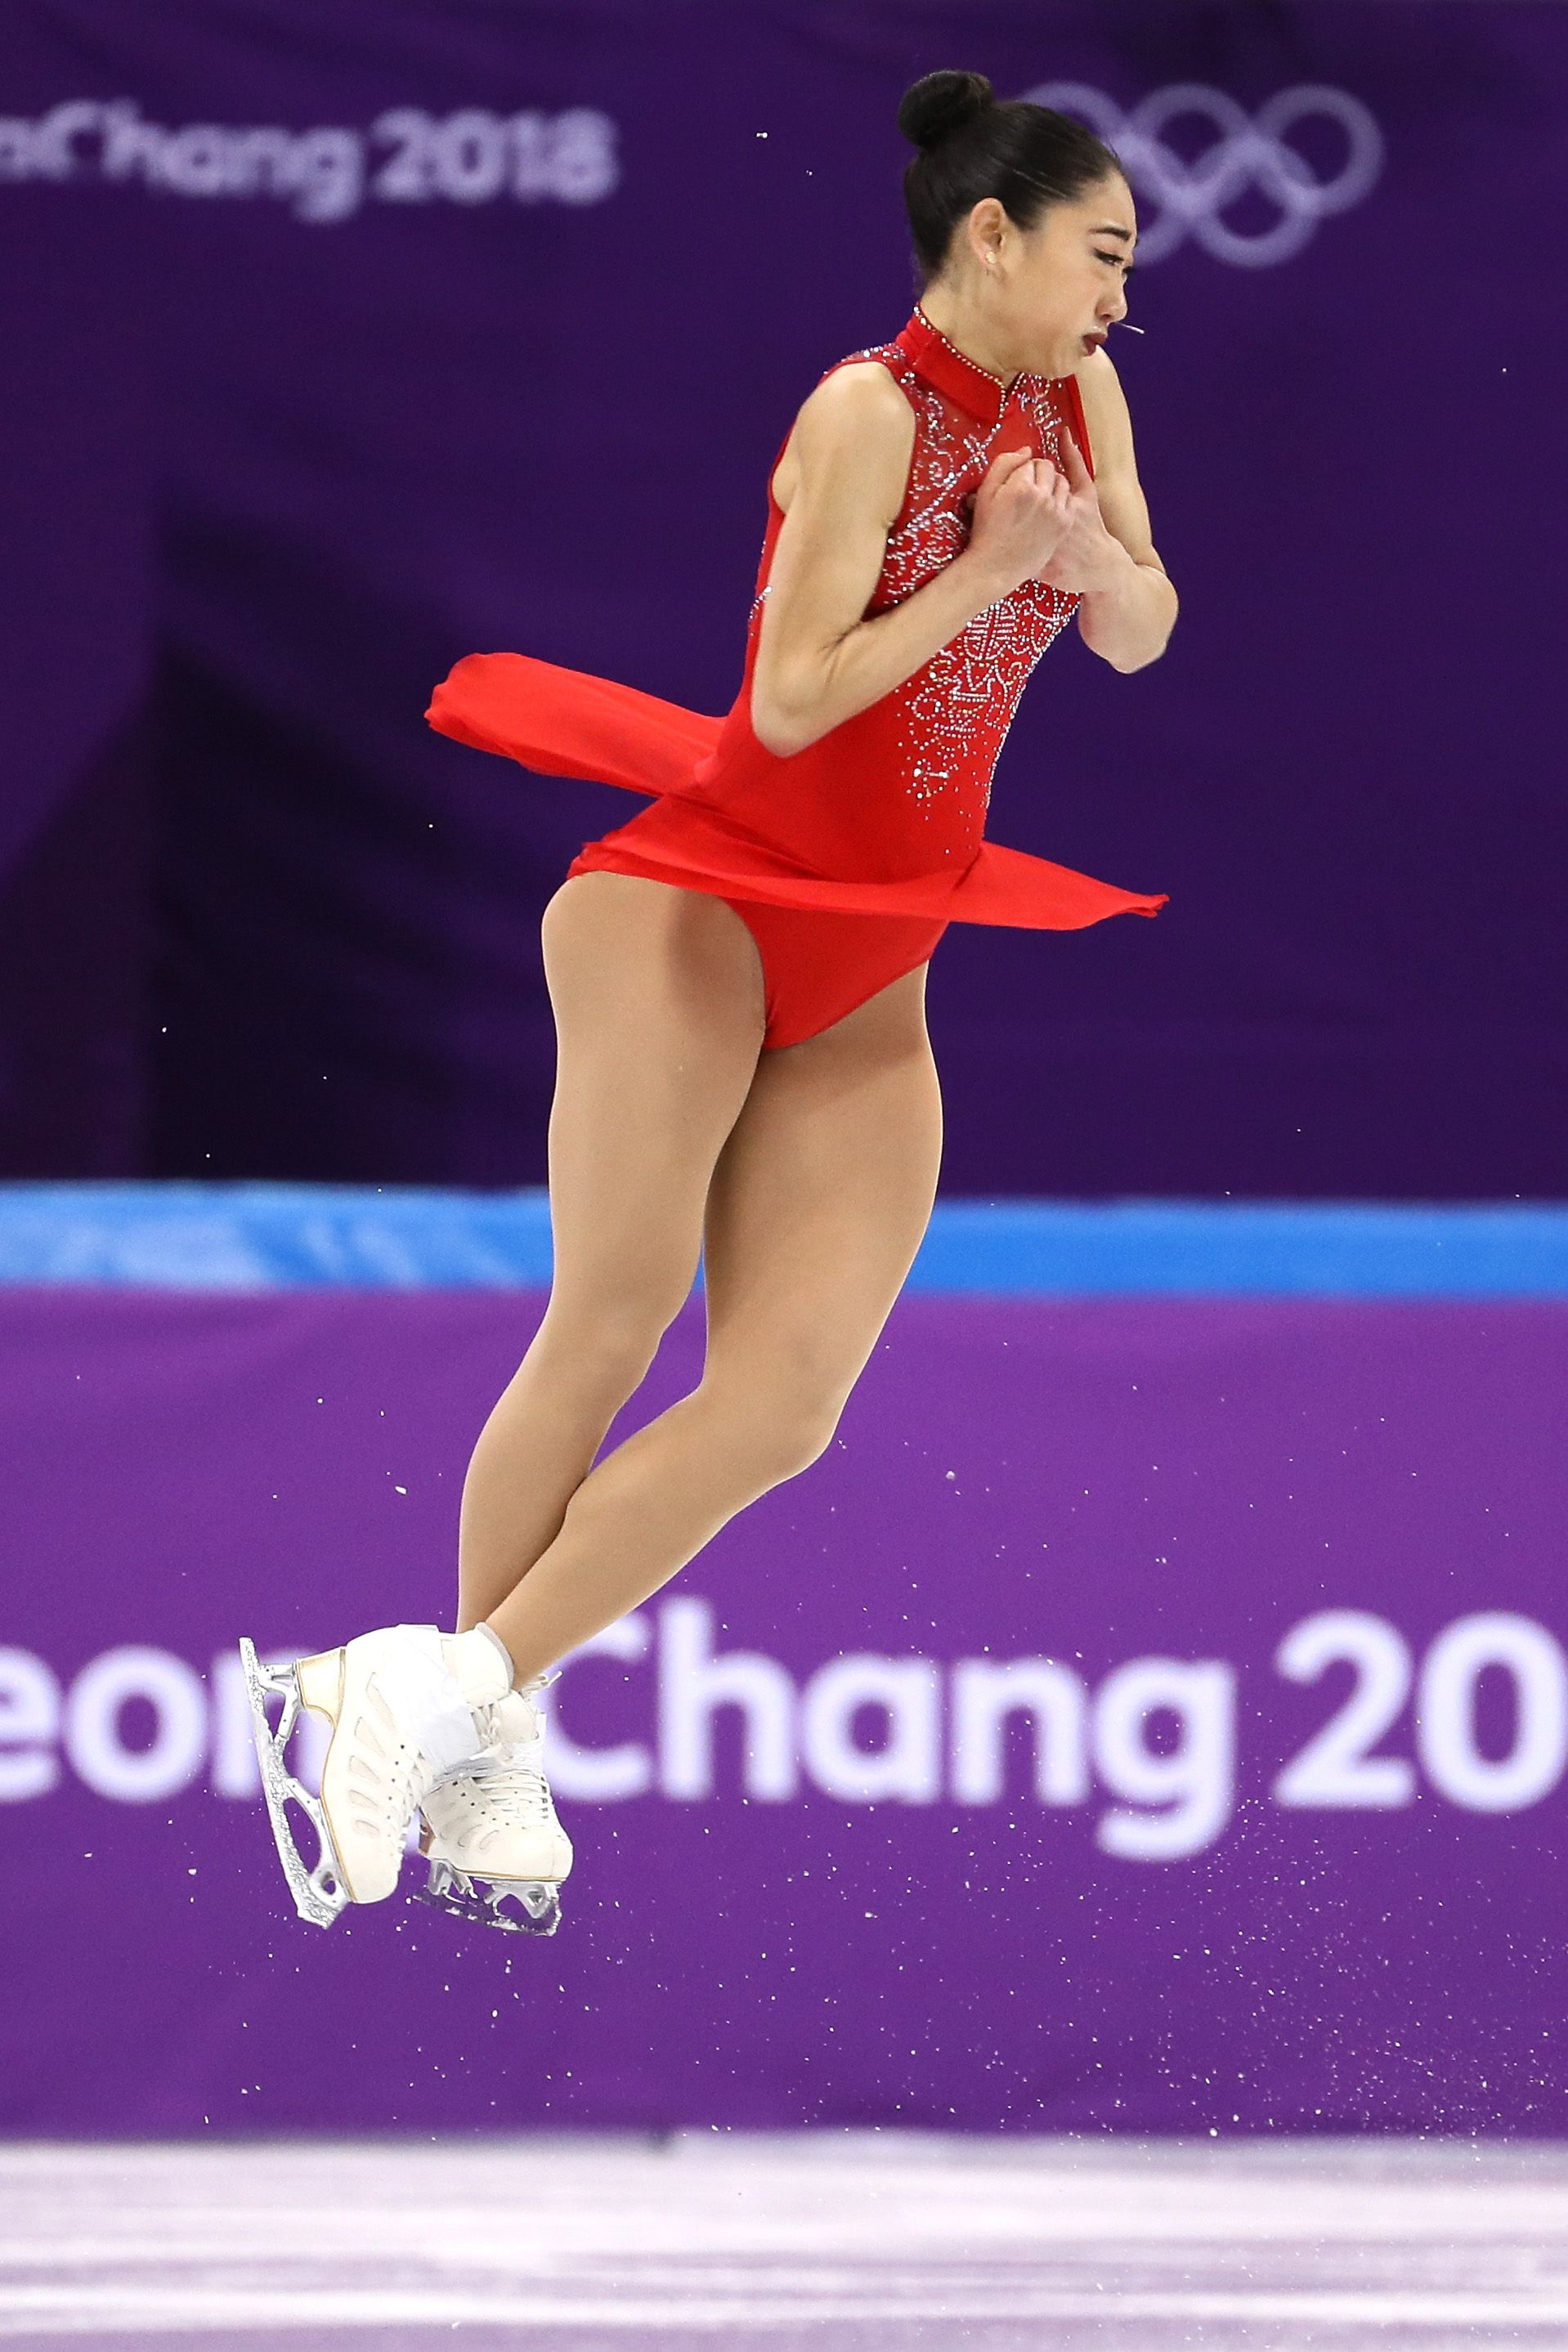 History-Making Figure Skater Mirai Nagasu Talks Life After the Olympics